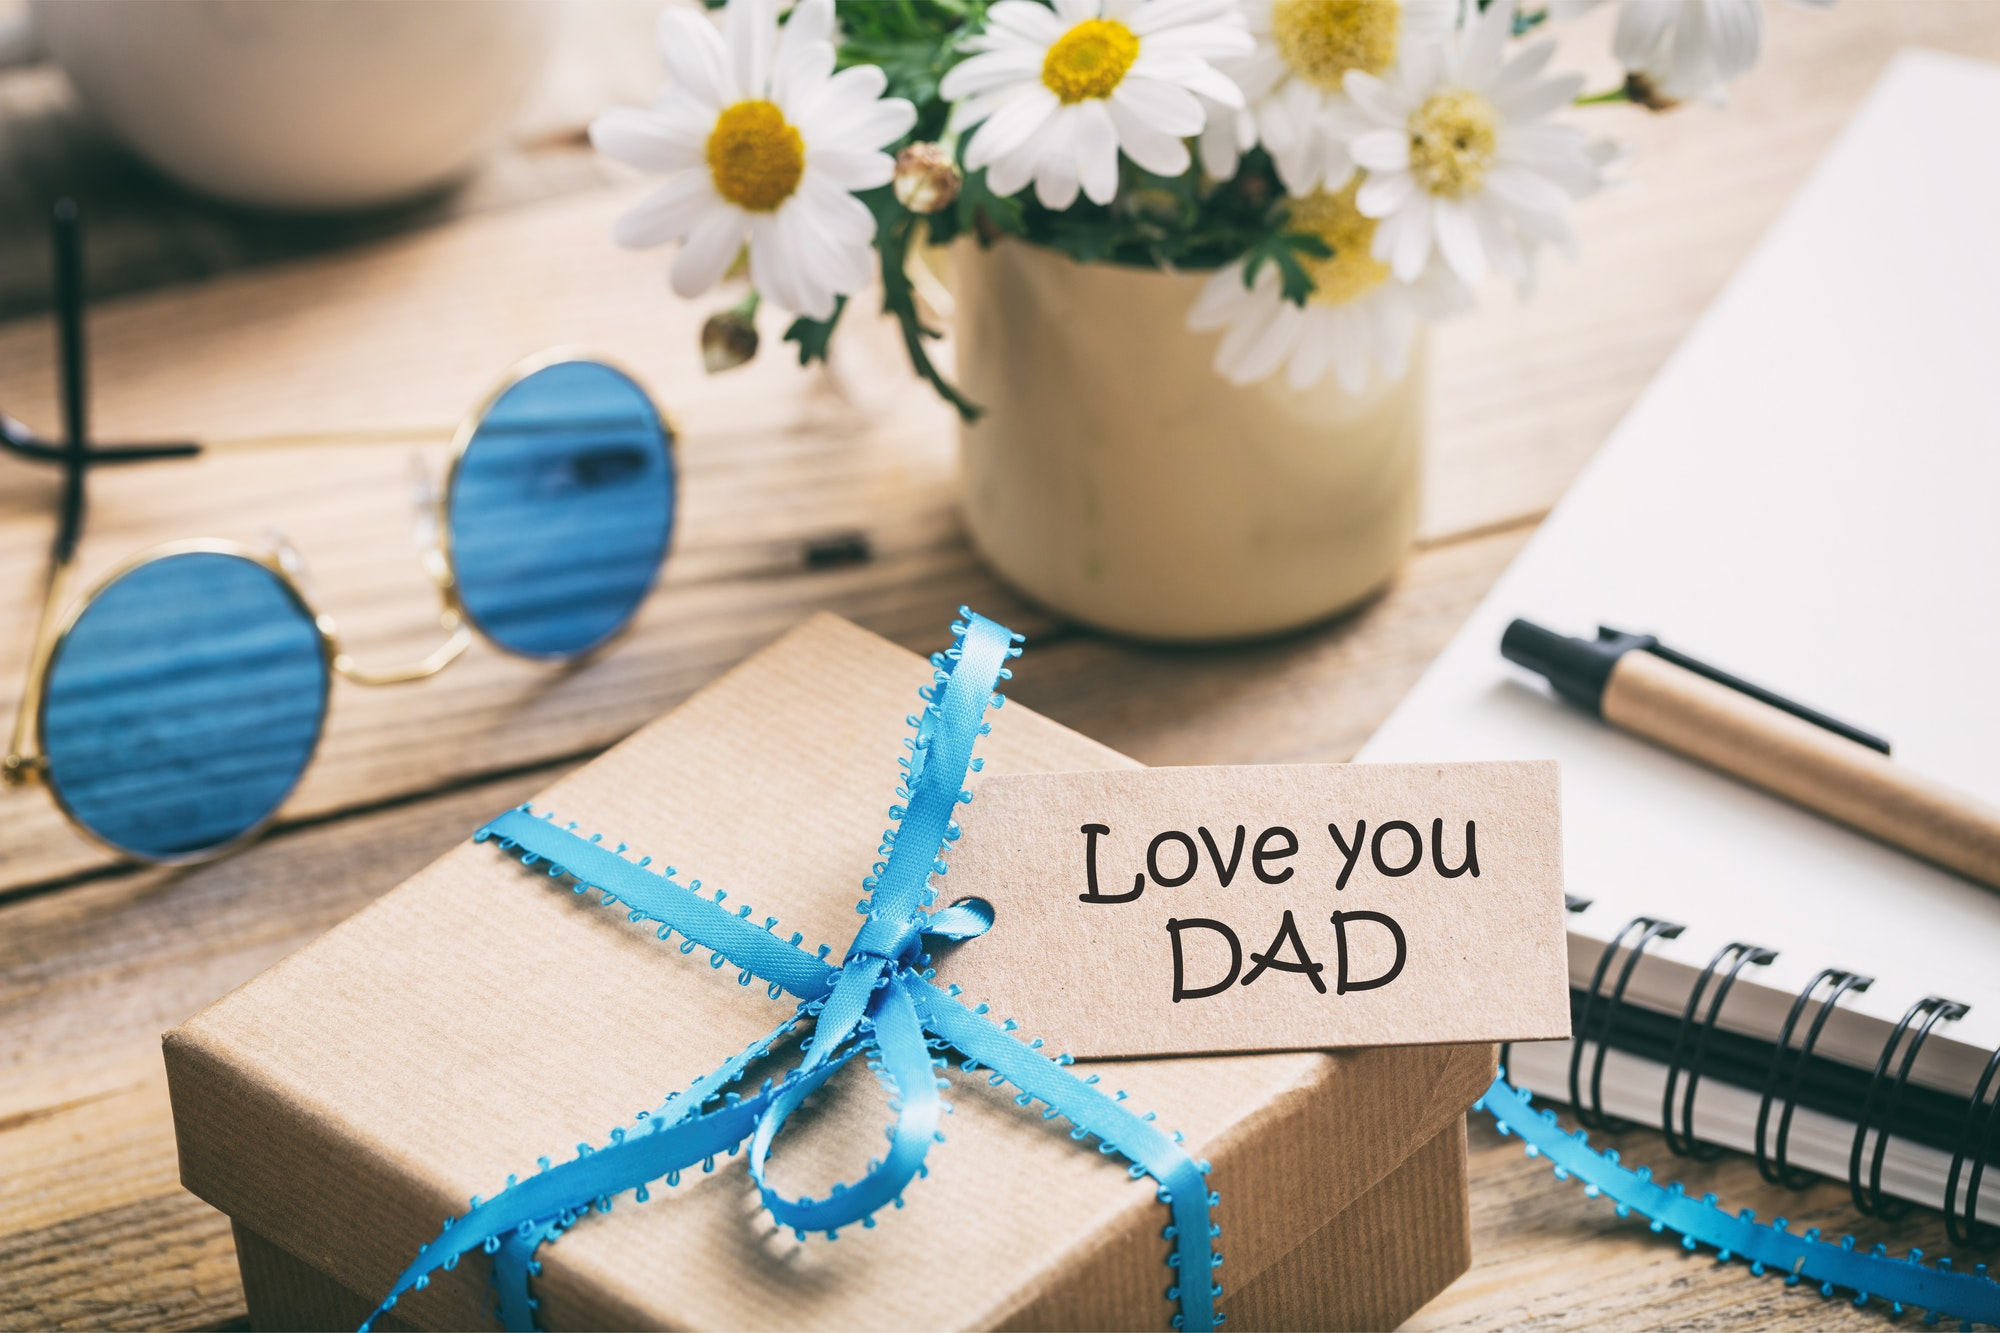 3 Healthy Tips For Dad This Father's Day